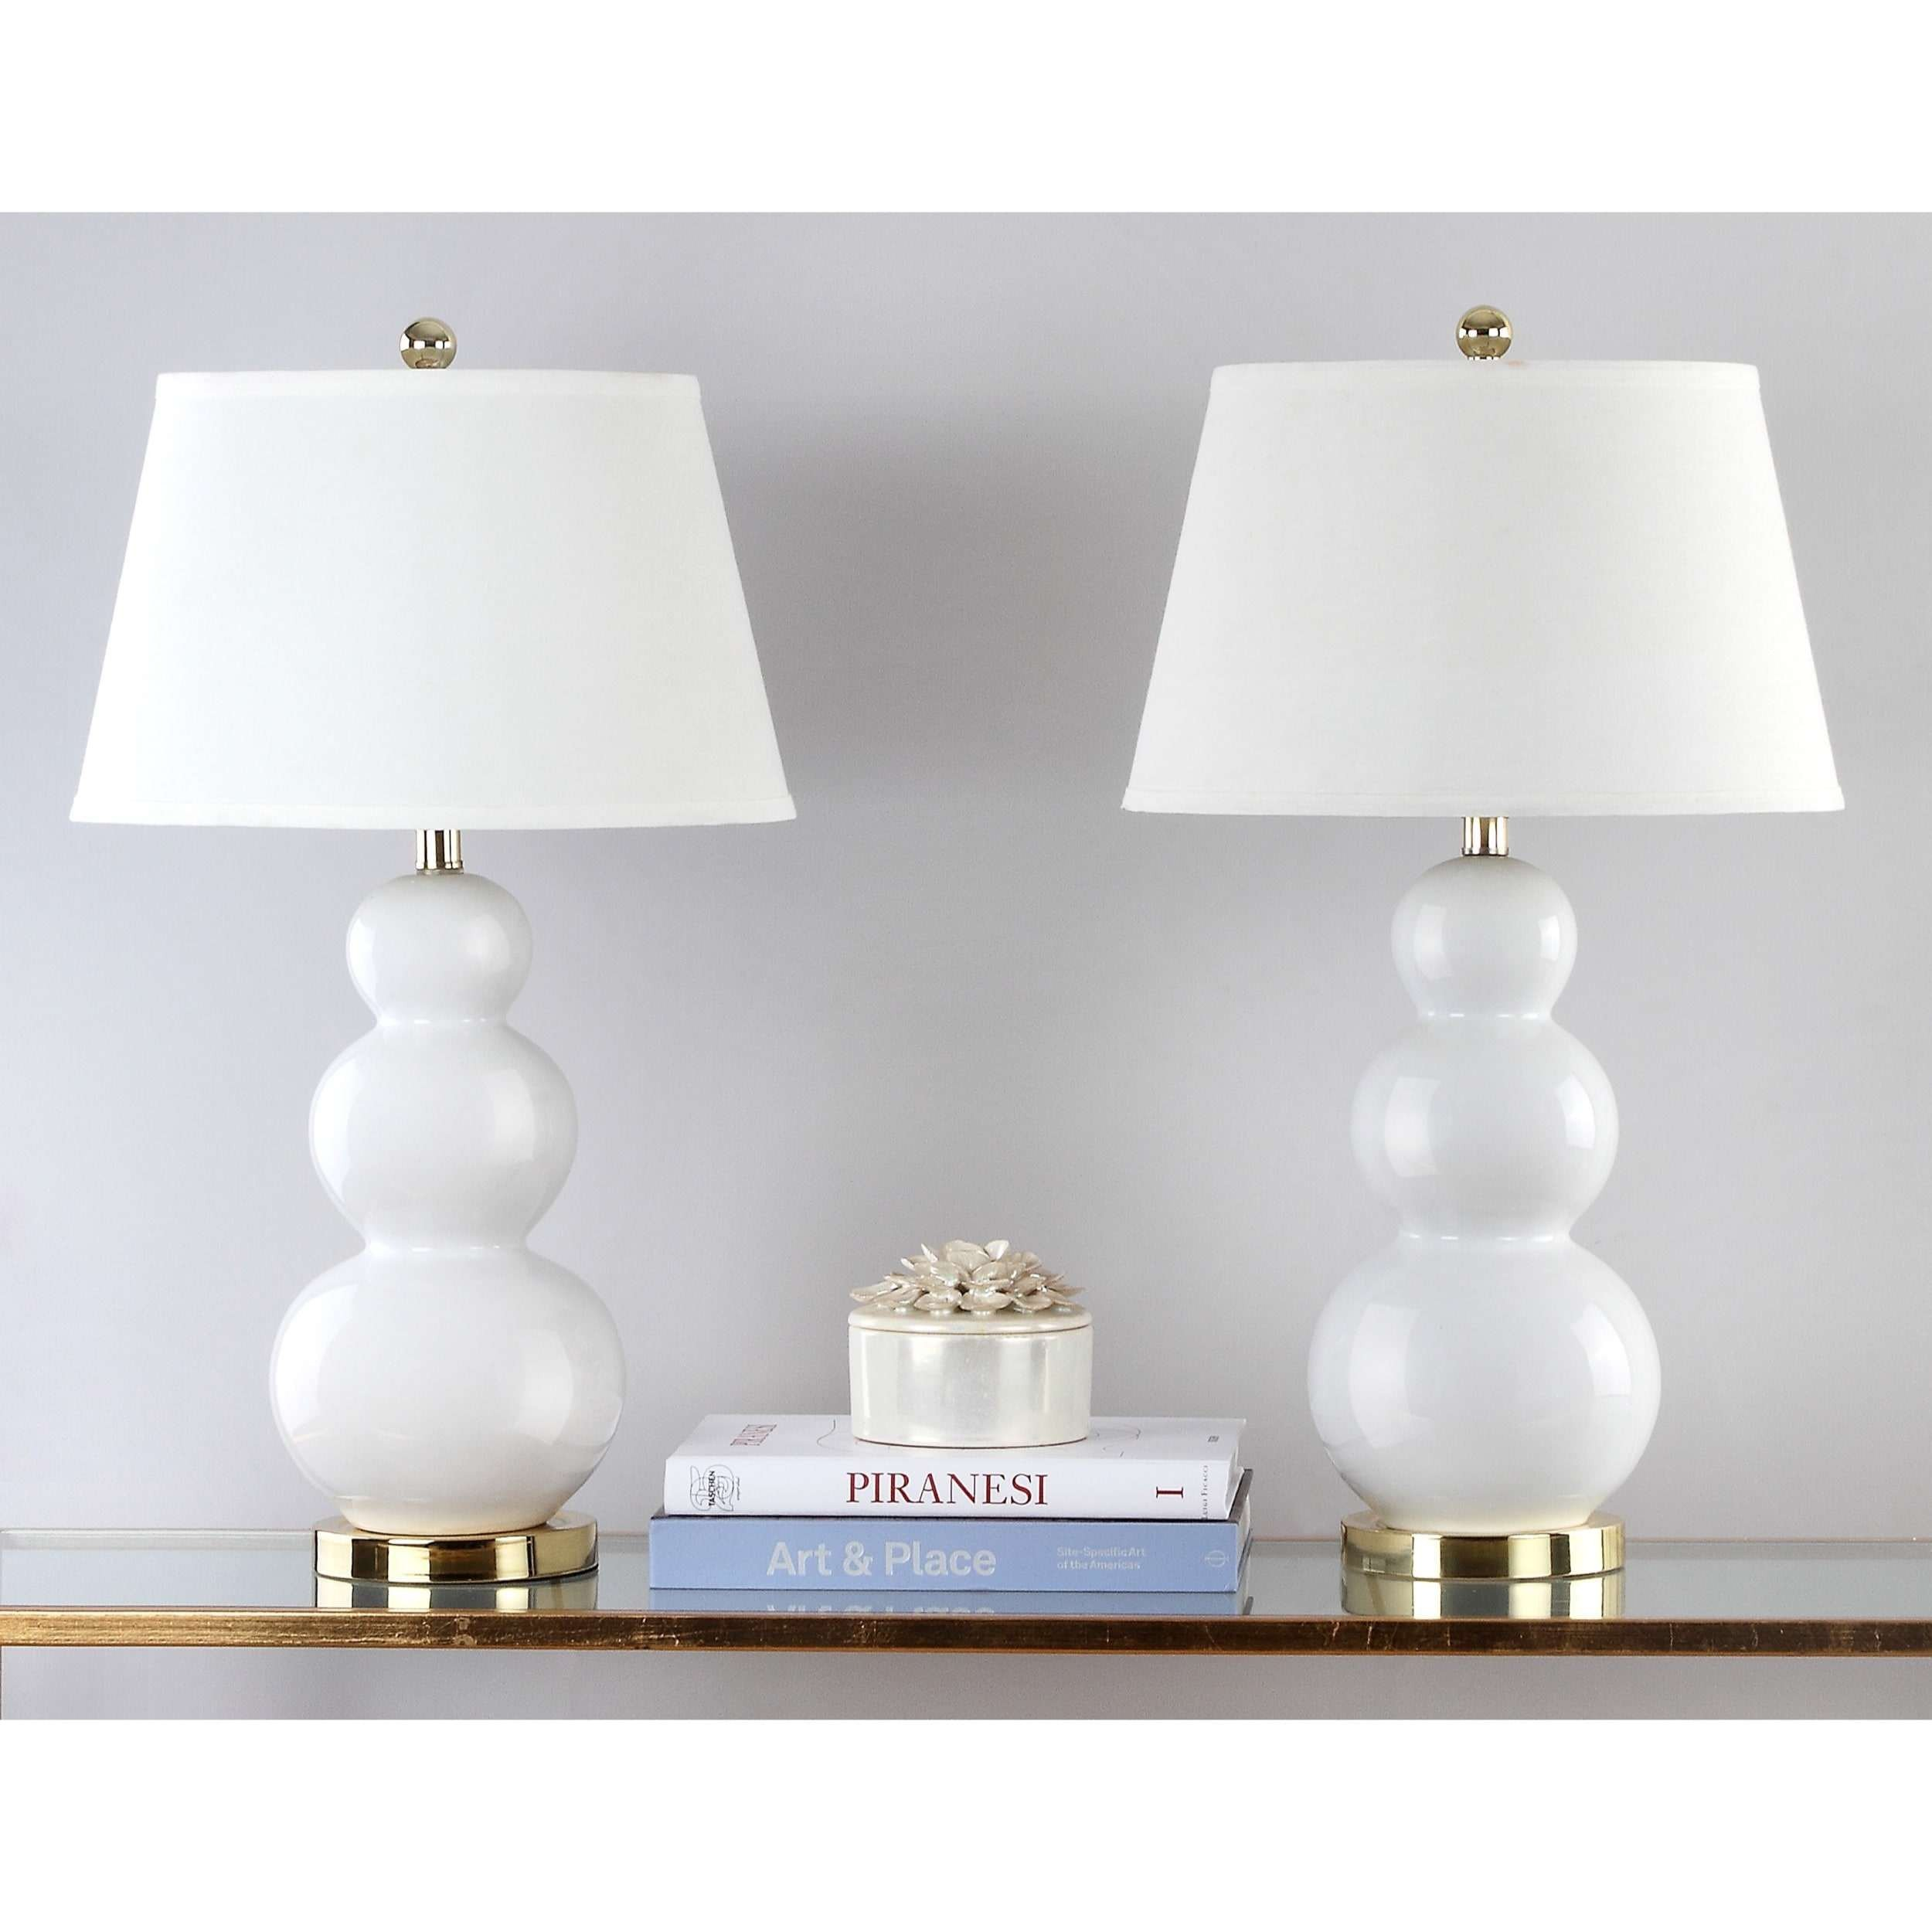 Modern Table Lamp for Bedroom Unique 5 Table Lamp Styles to Know